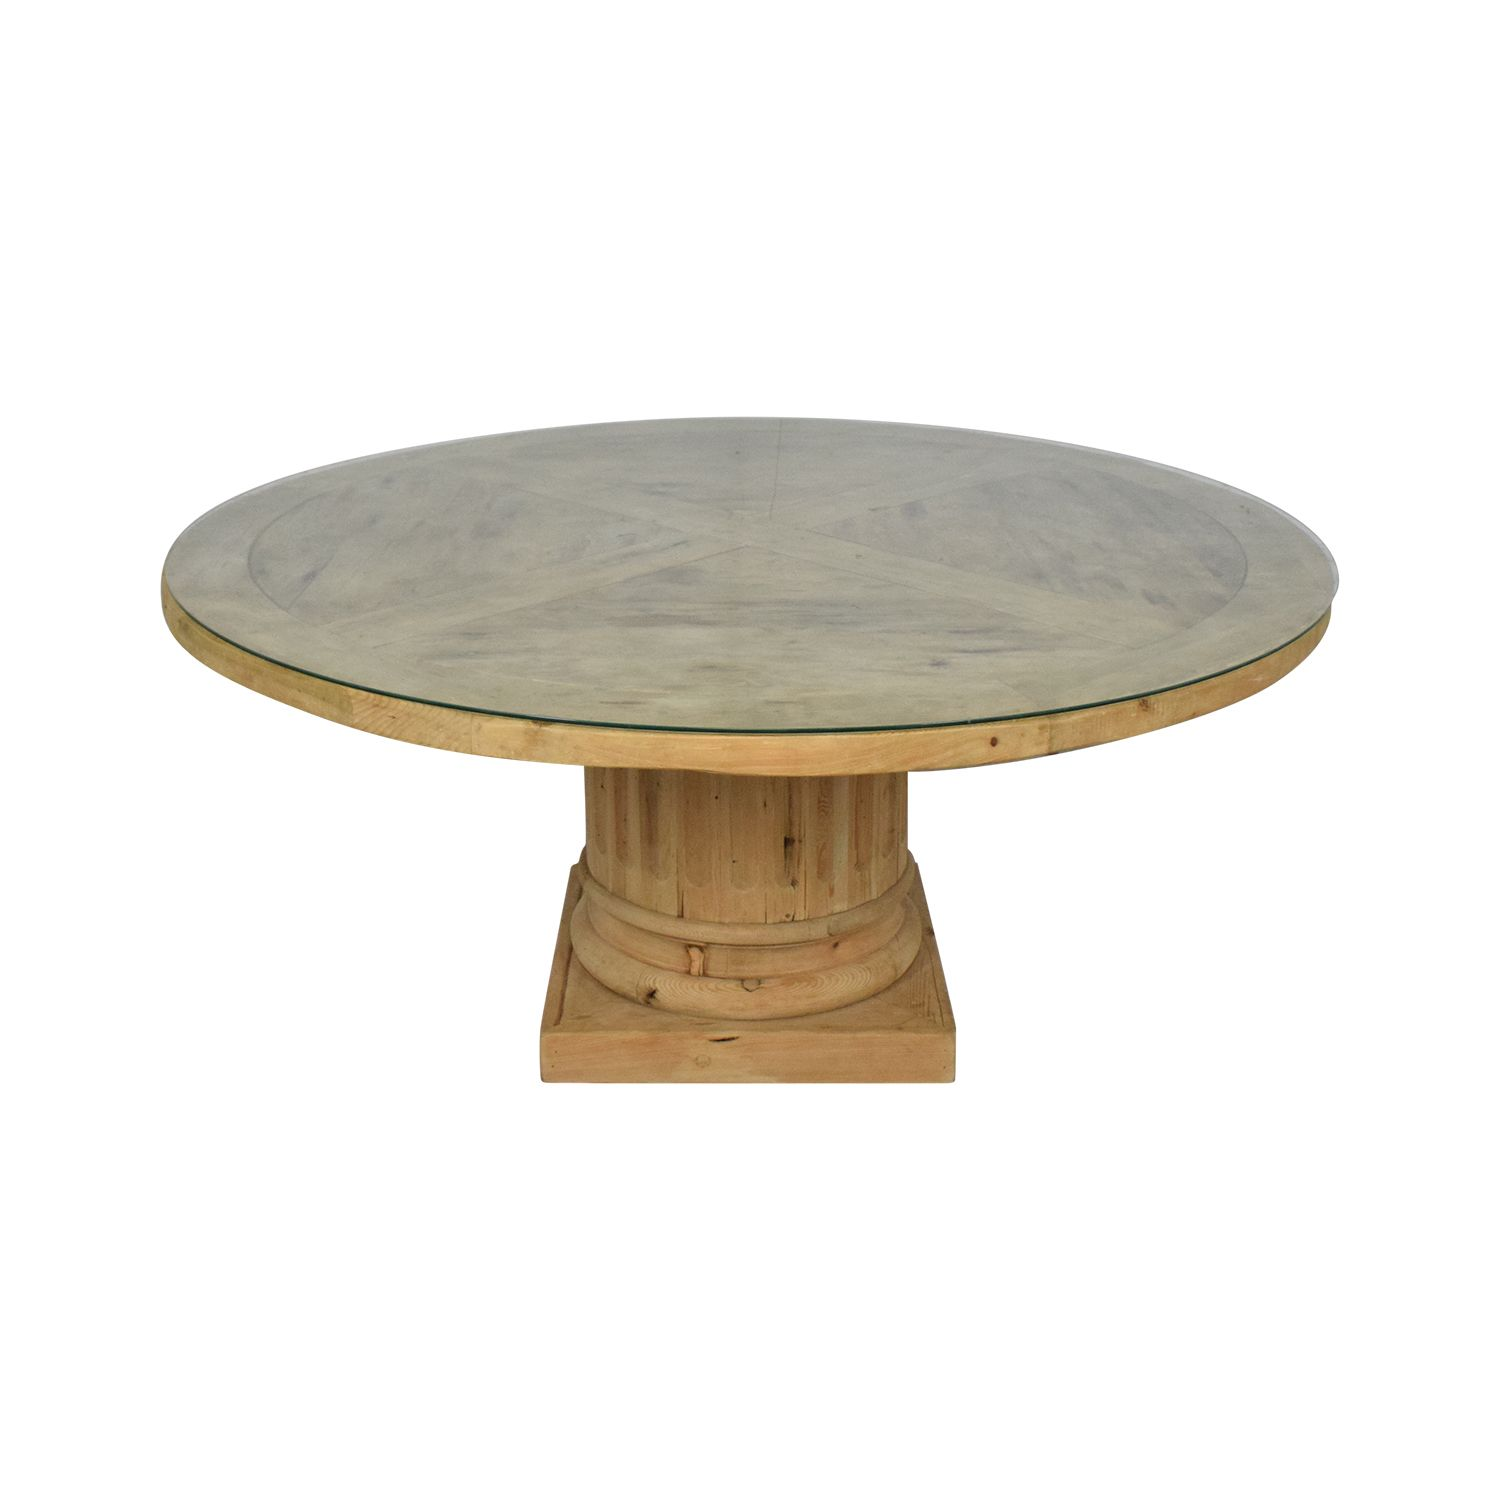 53% OFF - Restoration Hardware Restoration Hardware Salvaged Wood Architectural Column Dining Table / Tables #restorationhardware